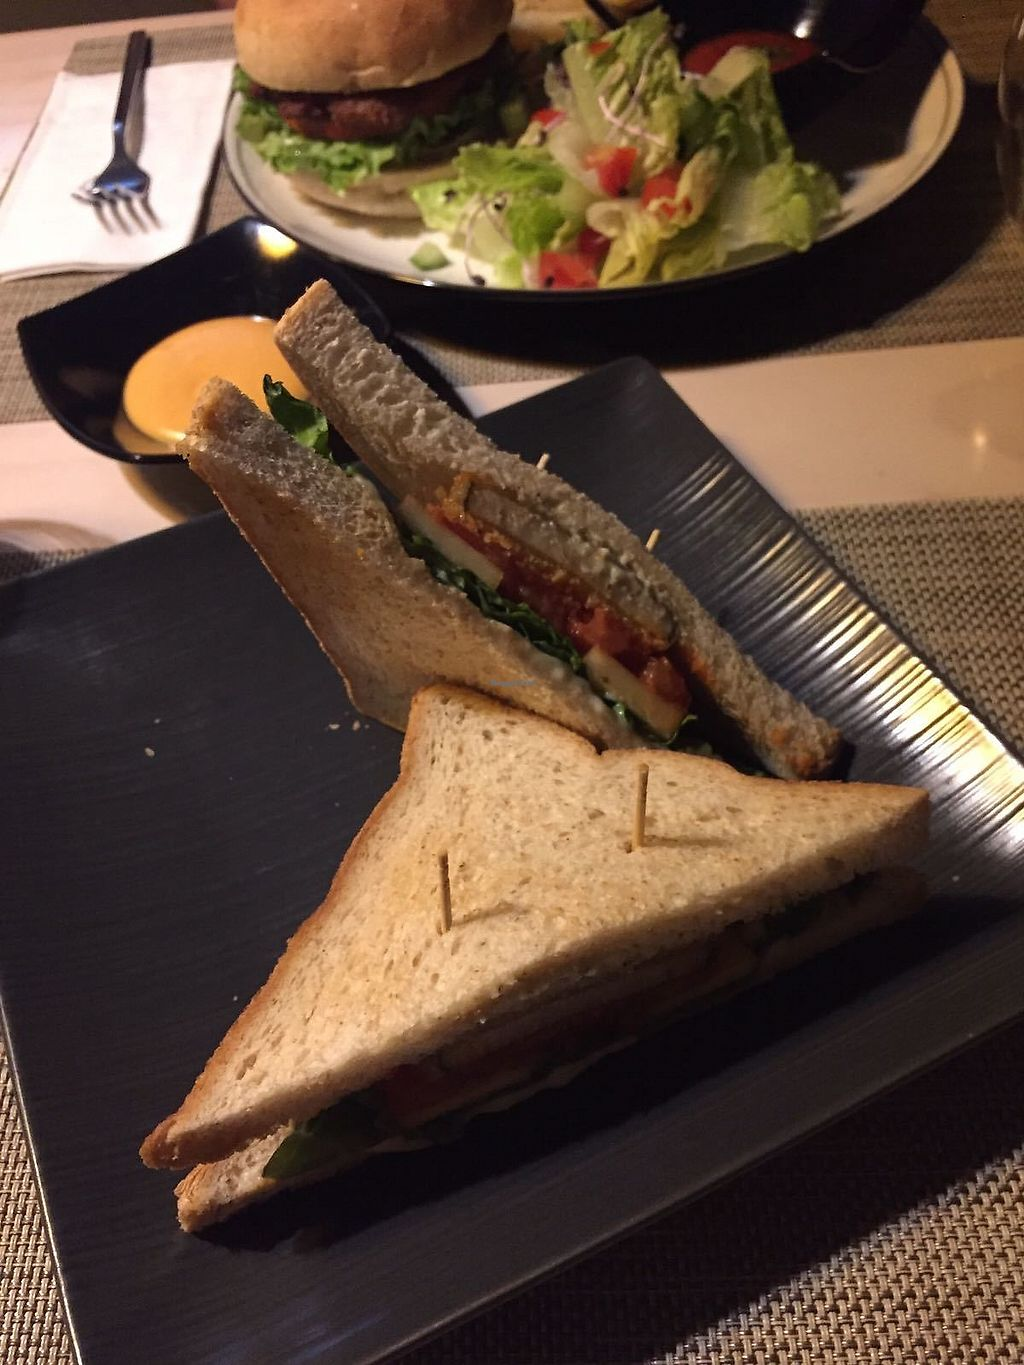 """Photo of Soul R. Vegan Cafe  by <a href=""""/members/profile/FlokiTheCat"""">FlokiTheCat</a> <br/>Fish sandwich <br/> July 31, 2017  - <a href='/contact/abuse/image/51321/287089'>Report</a>"""